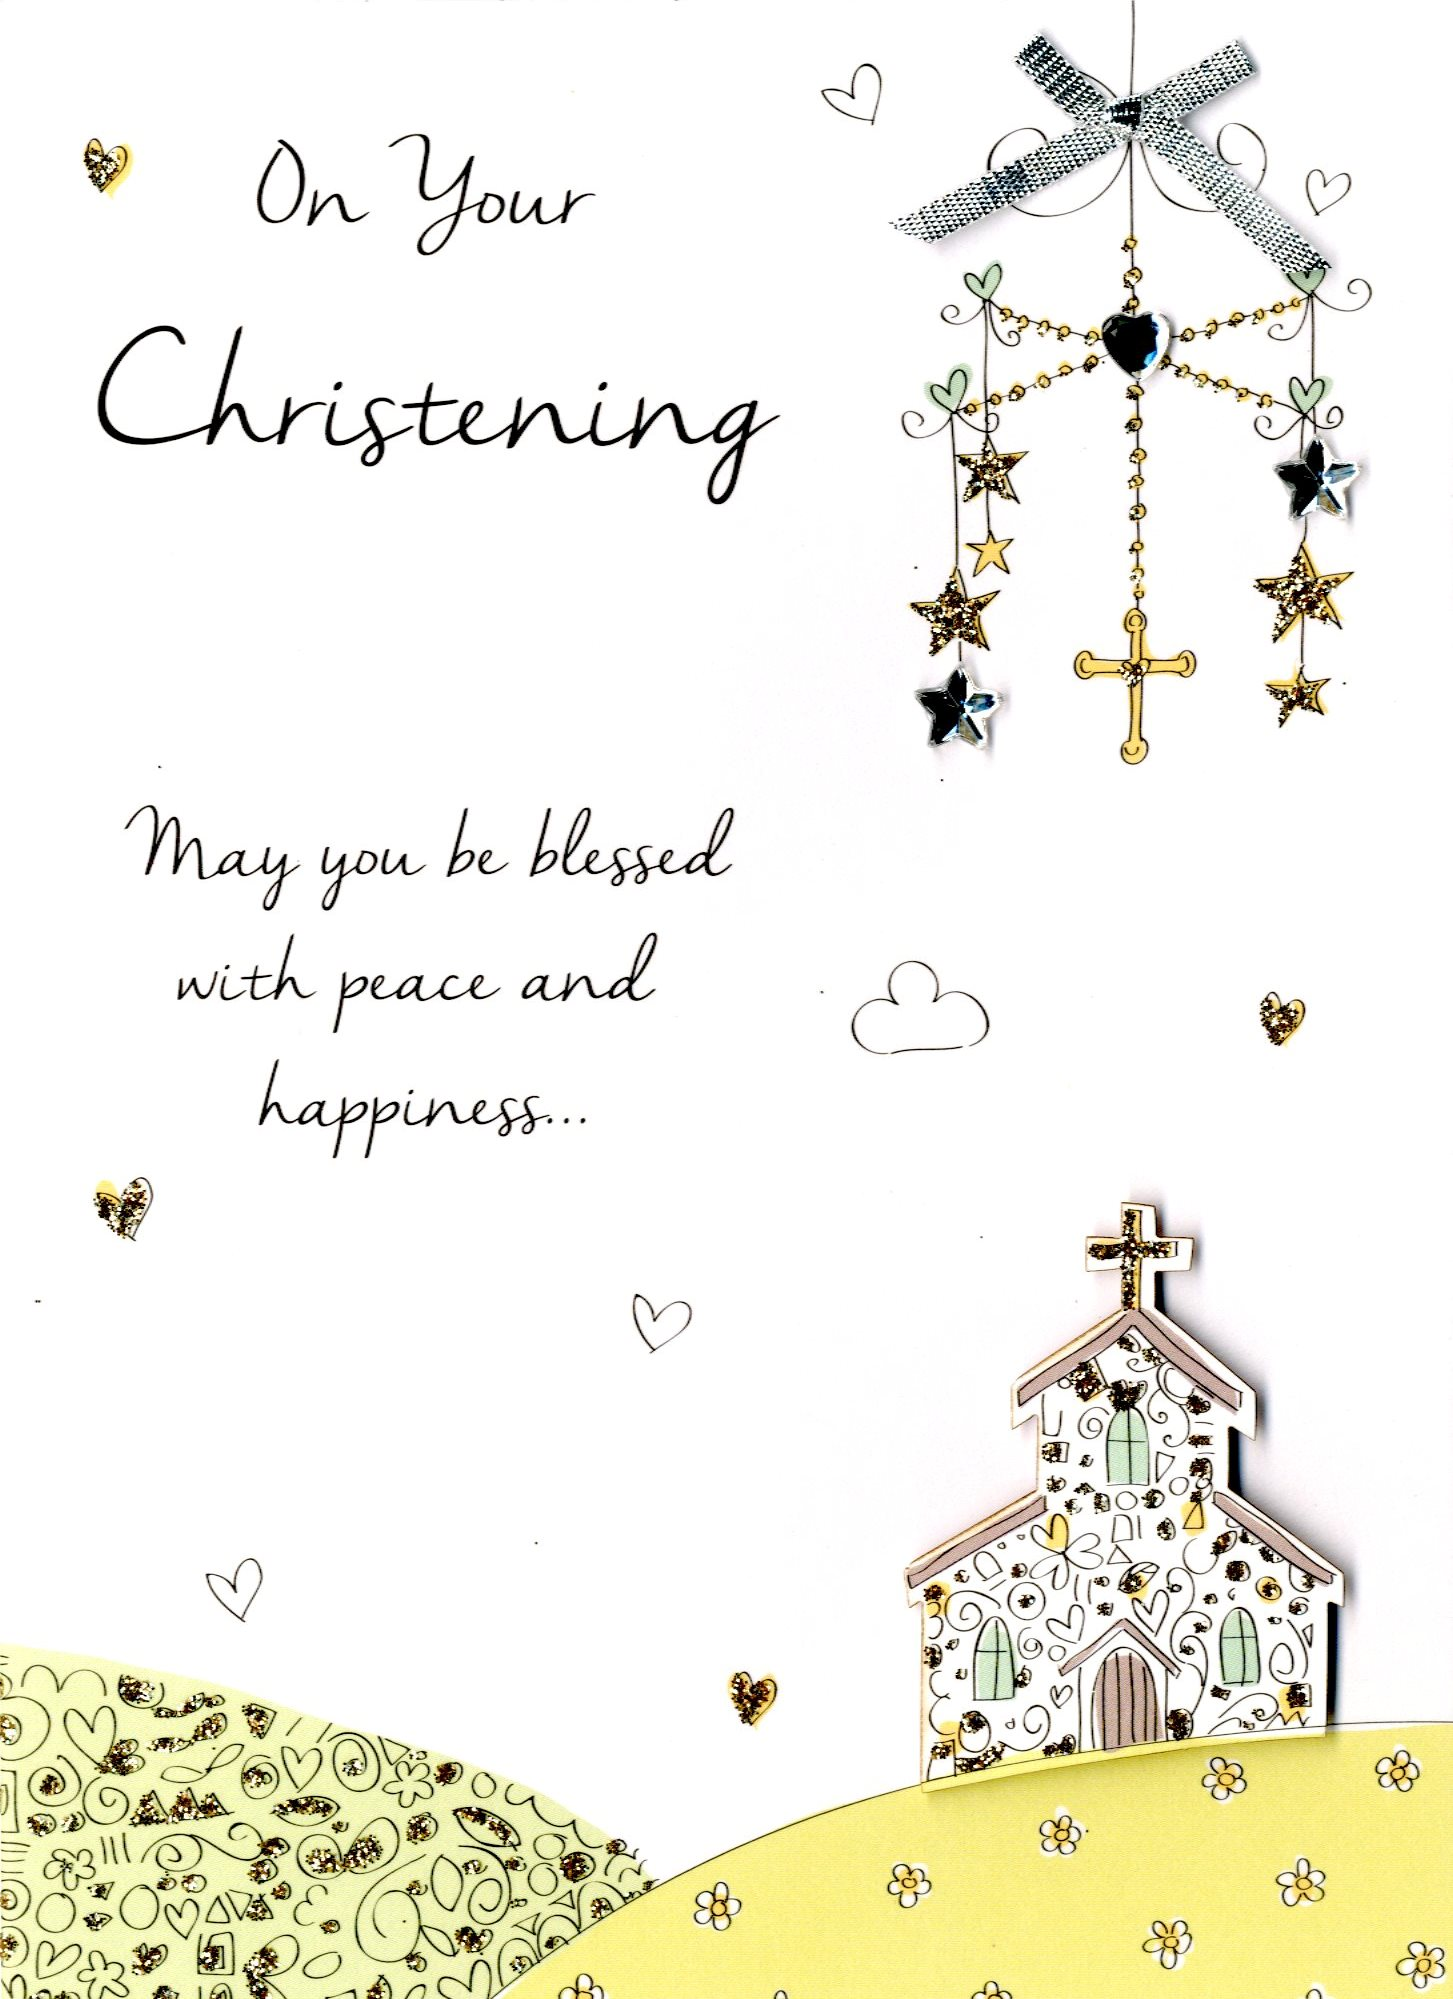 on your christening greeting